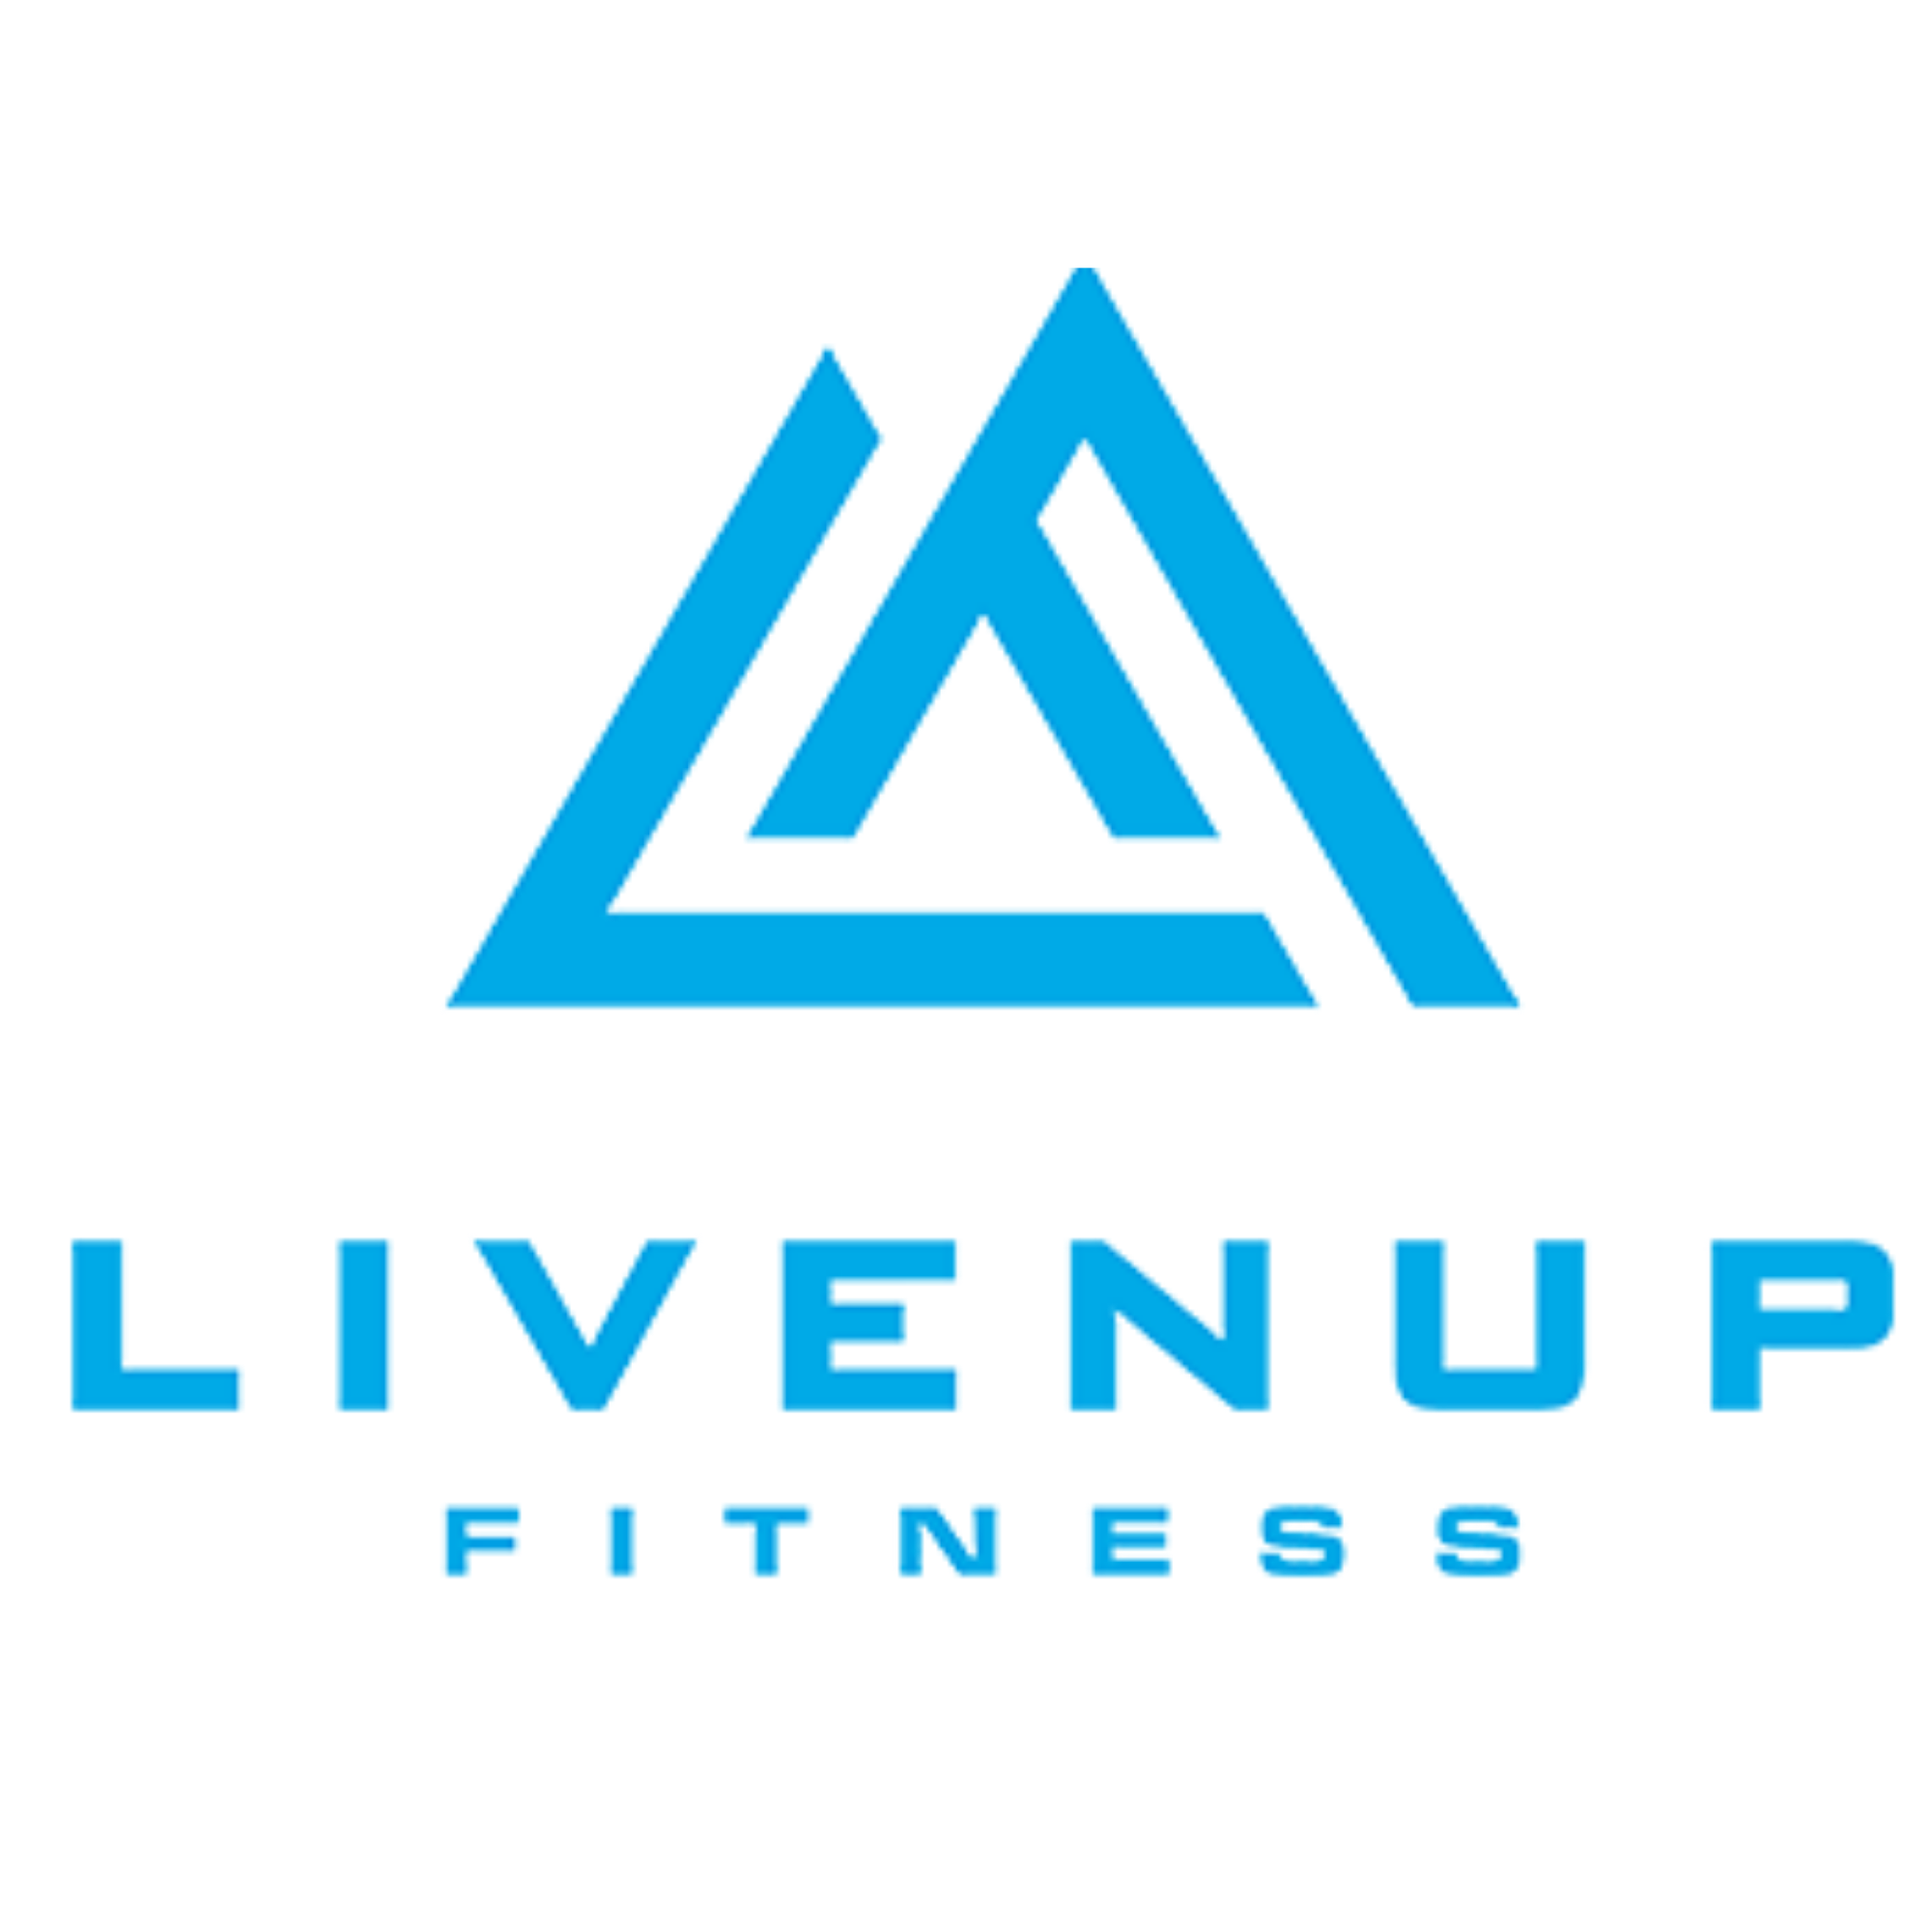 Liven Up Fitness